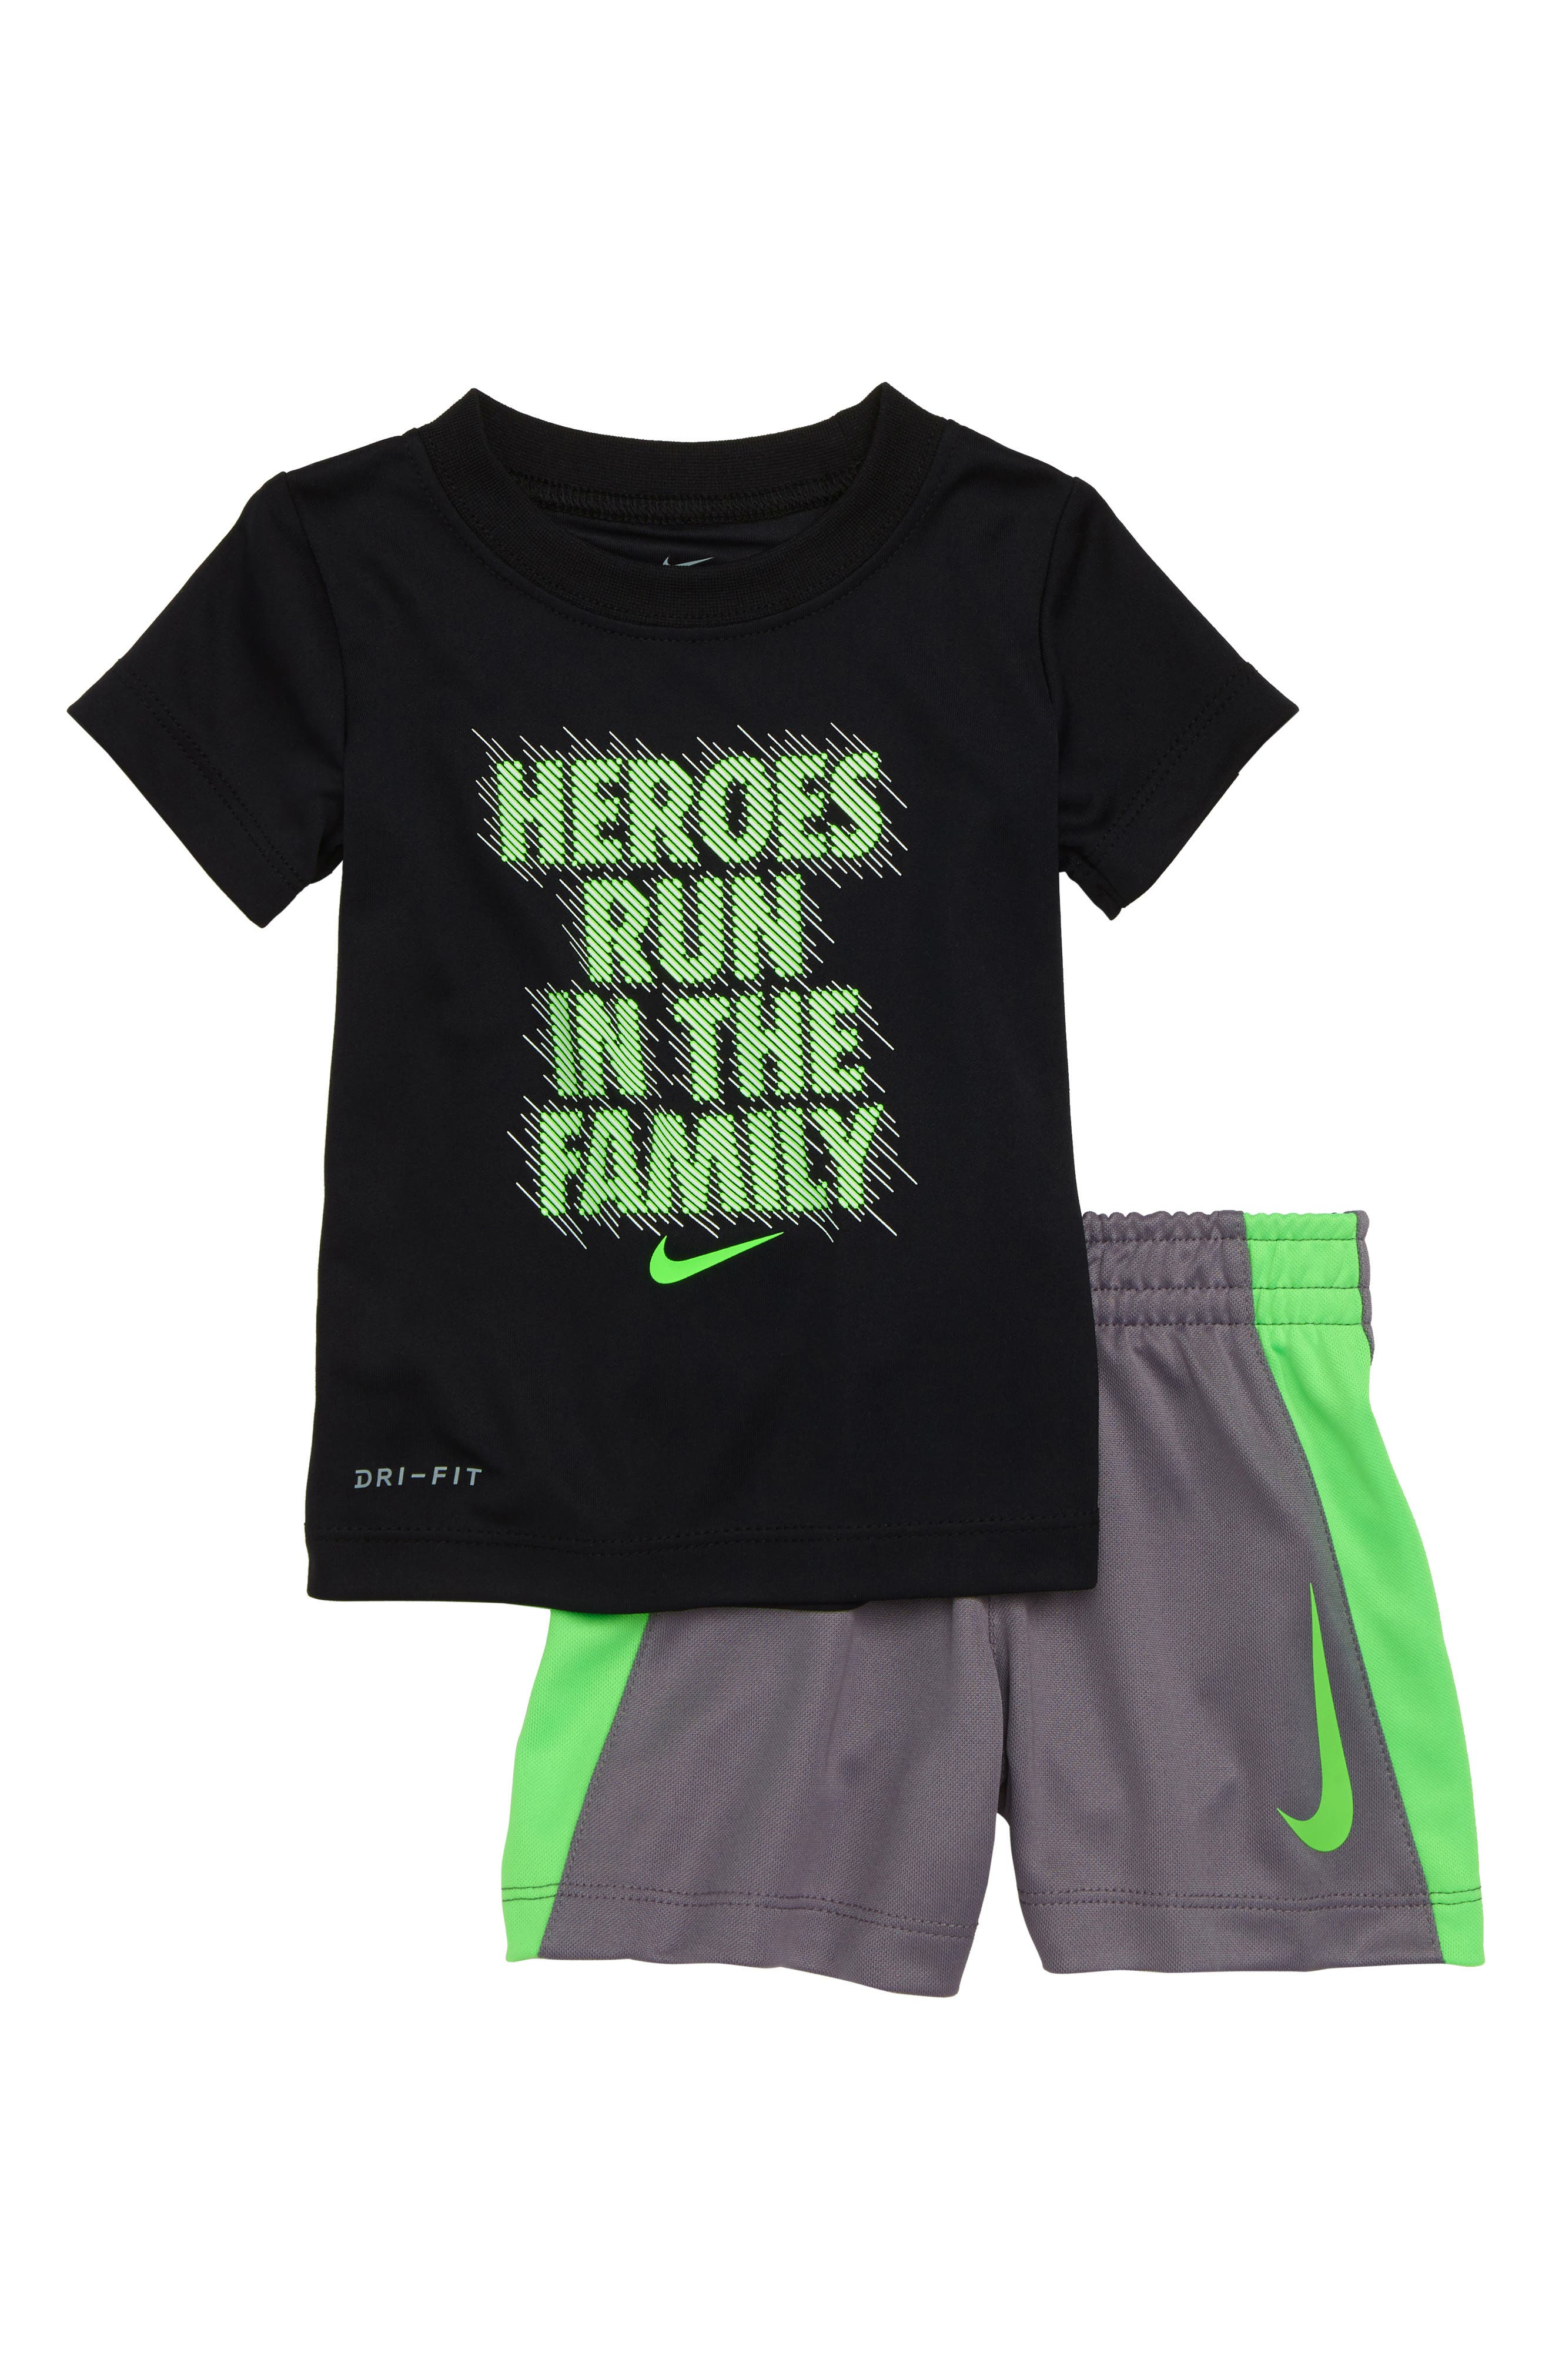 Dry Heroes Run in the Family Tee & Shorts Set,                         Main,                         color, Black